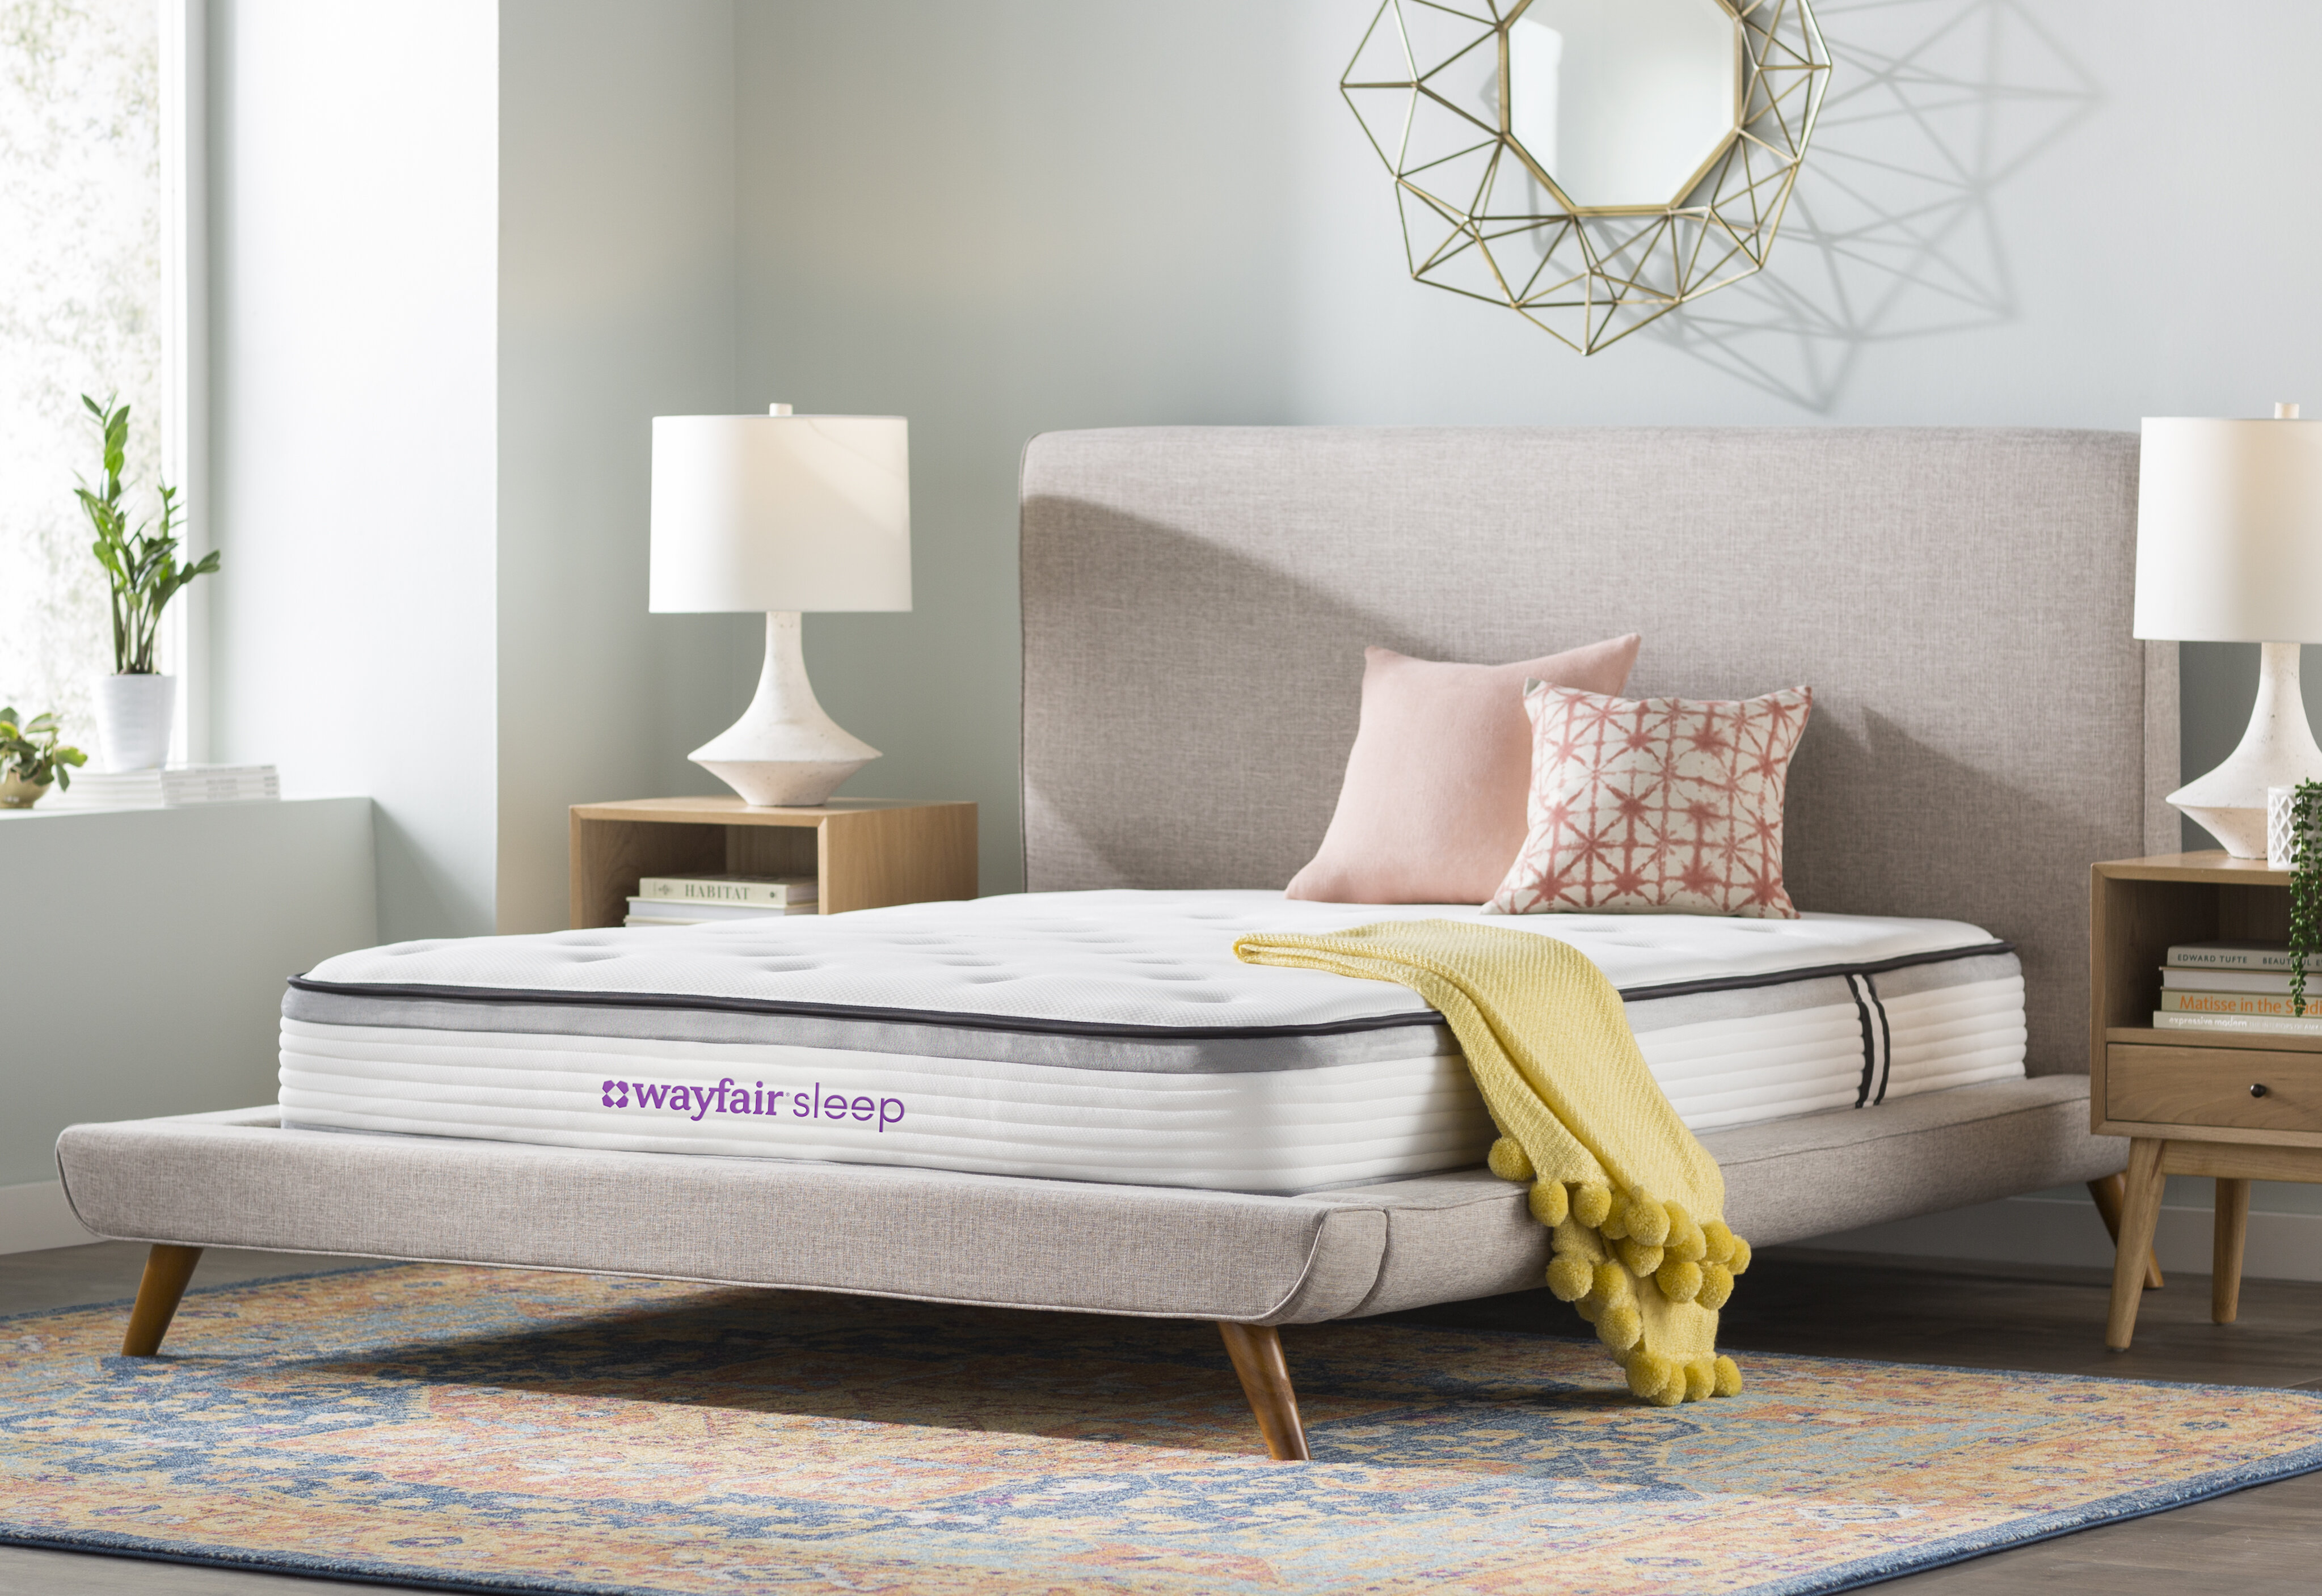 Mattresses Are A Crucial Part Of Getting The Rest And Rejuvenation Your Body Needs Read Our Guide To Learn How Pick Mattress For Perfect Night S